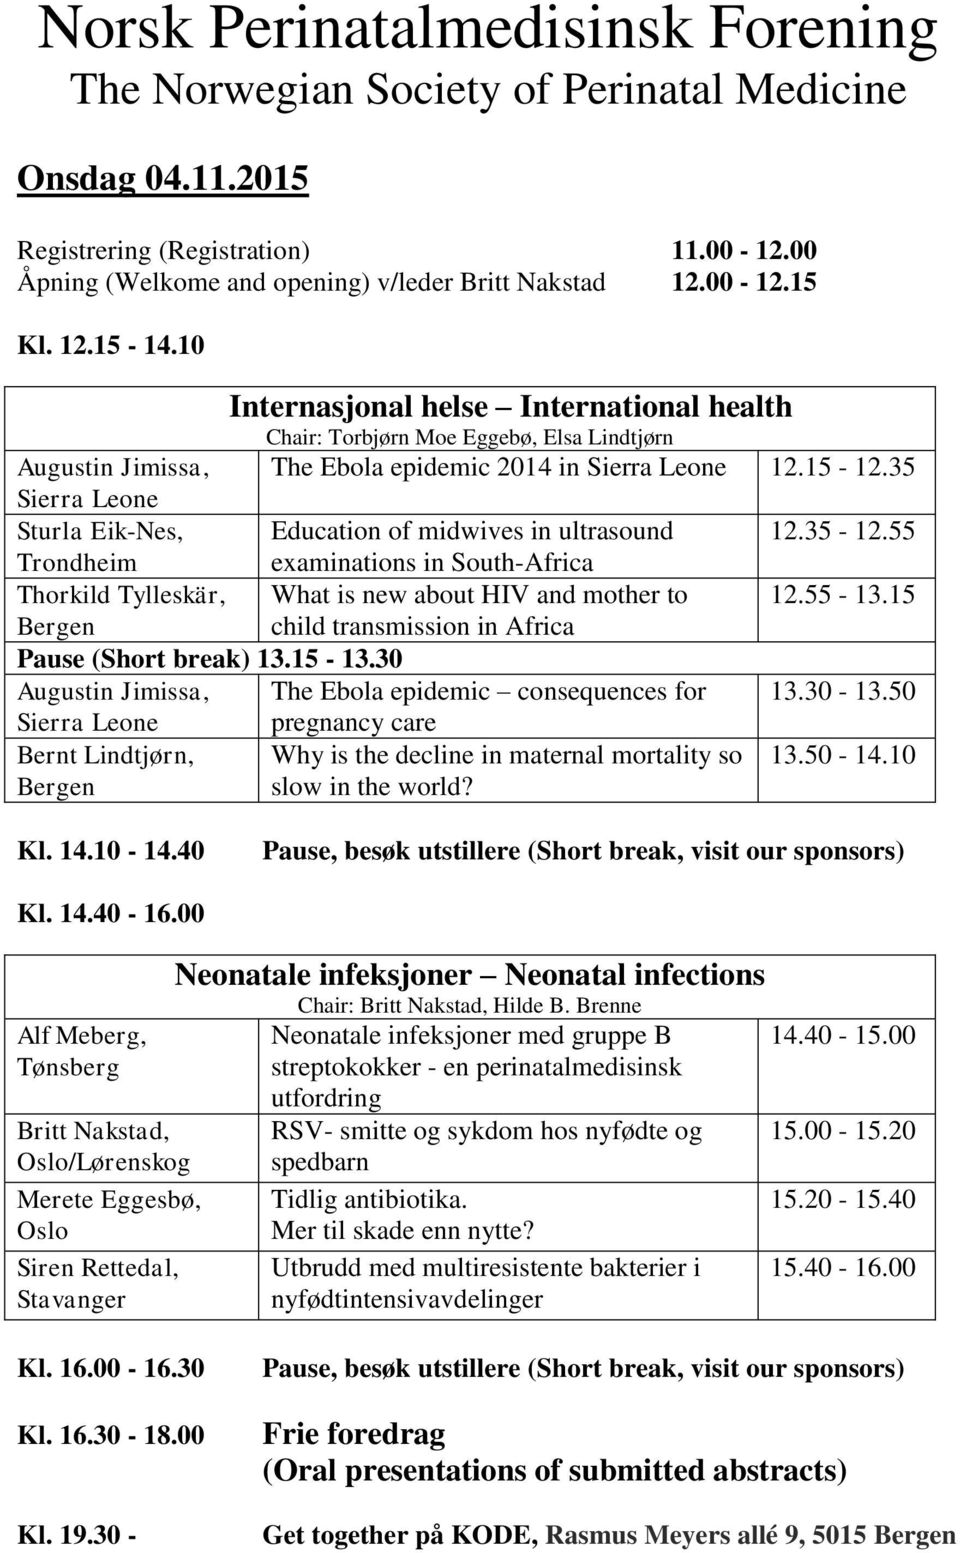 35 Sierra Leone Sturla Eik-Nes, Education of midwives in ultrasound 12.35-12.55 Trondheim examinations in South-Africa Thorkild Tylleskär, What is new about HIV and mother to 12.55-13.